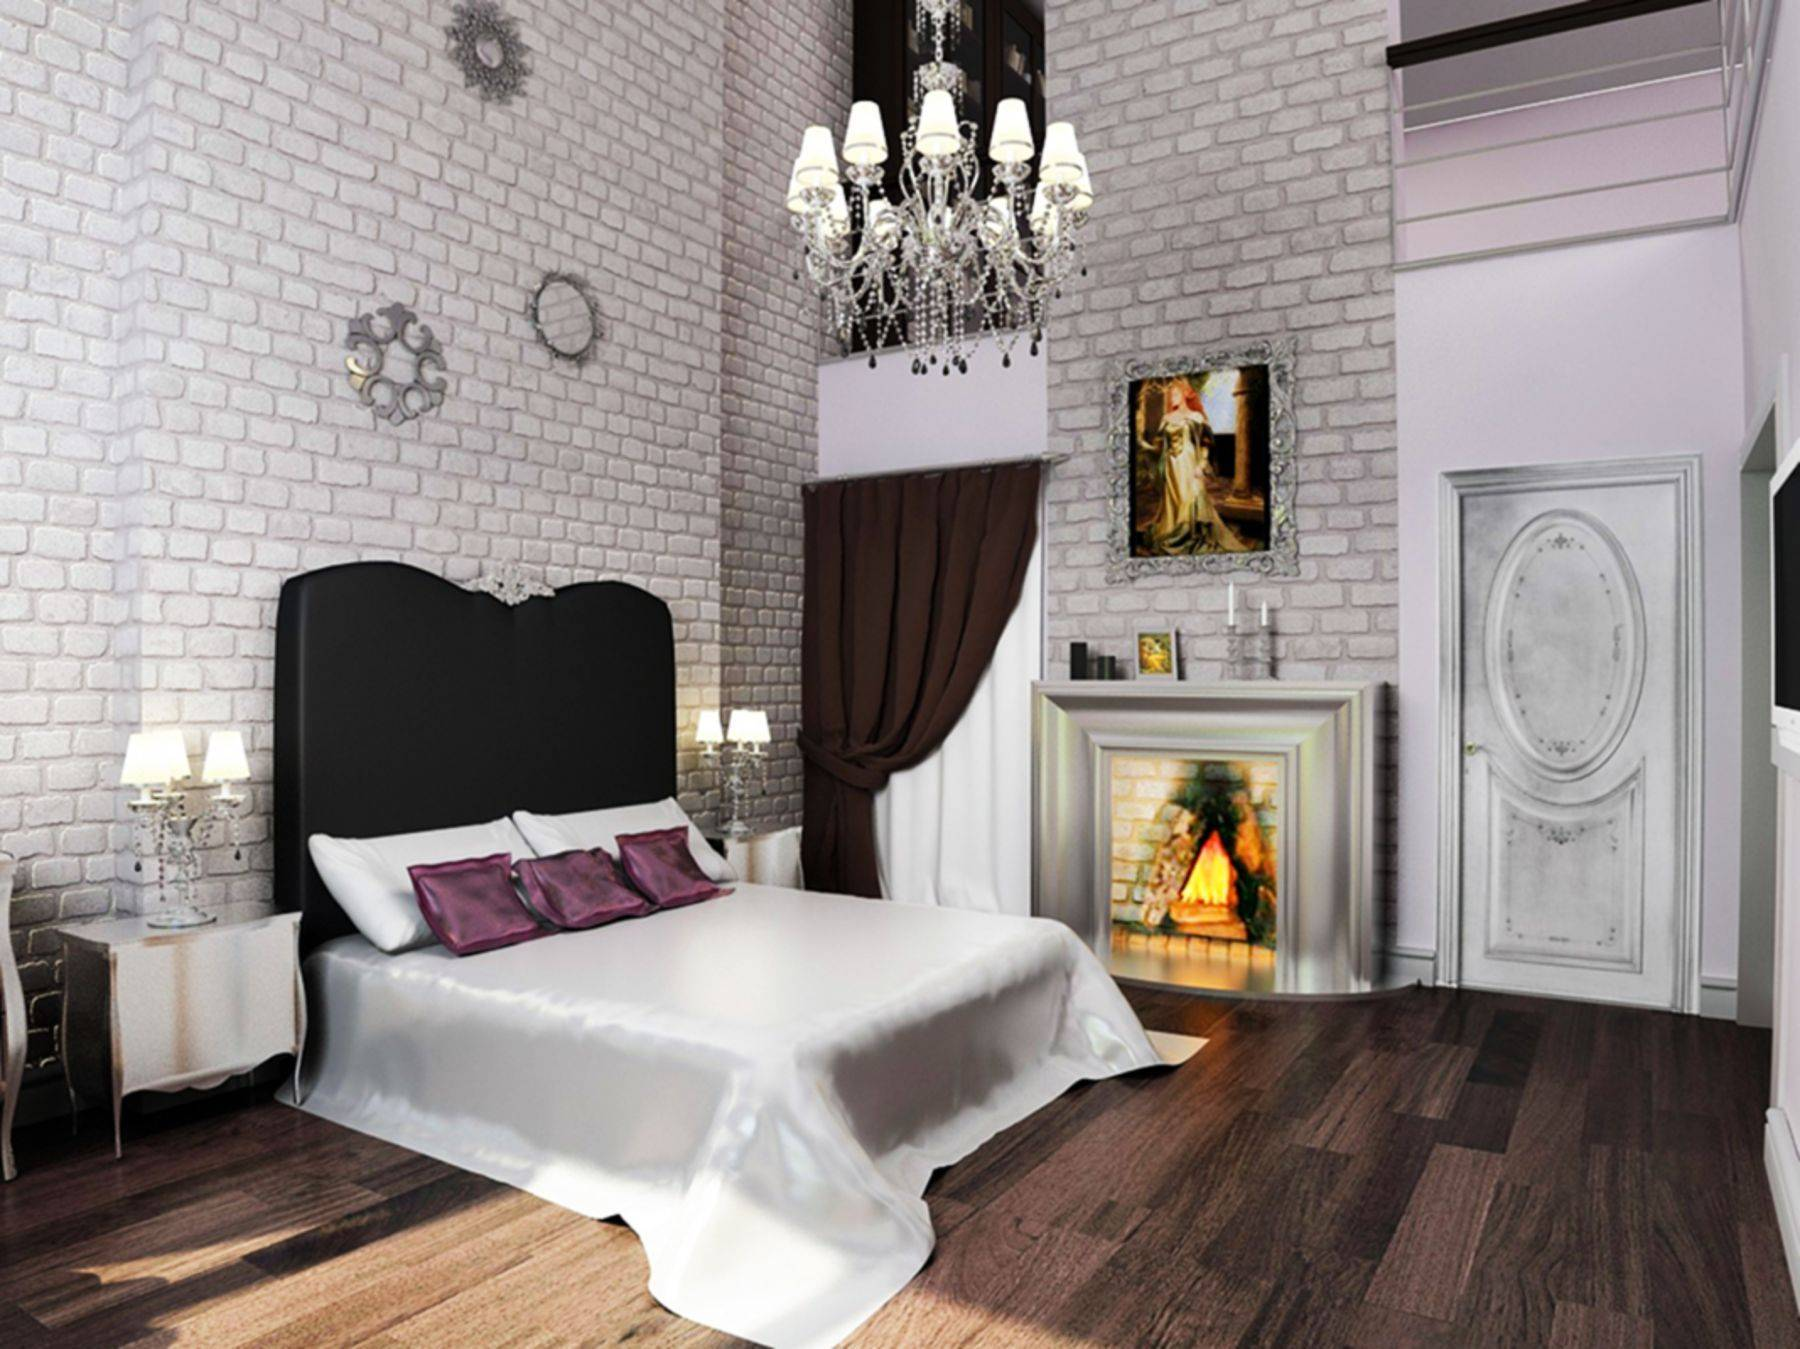 Gothic Bedroom with Brick Walls